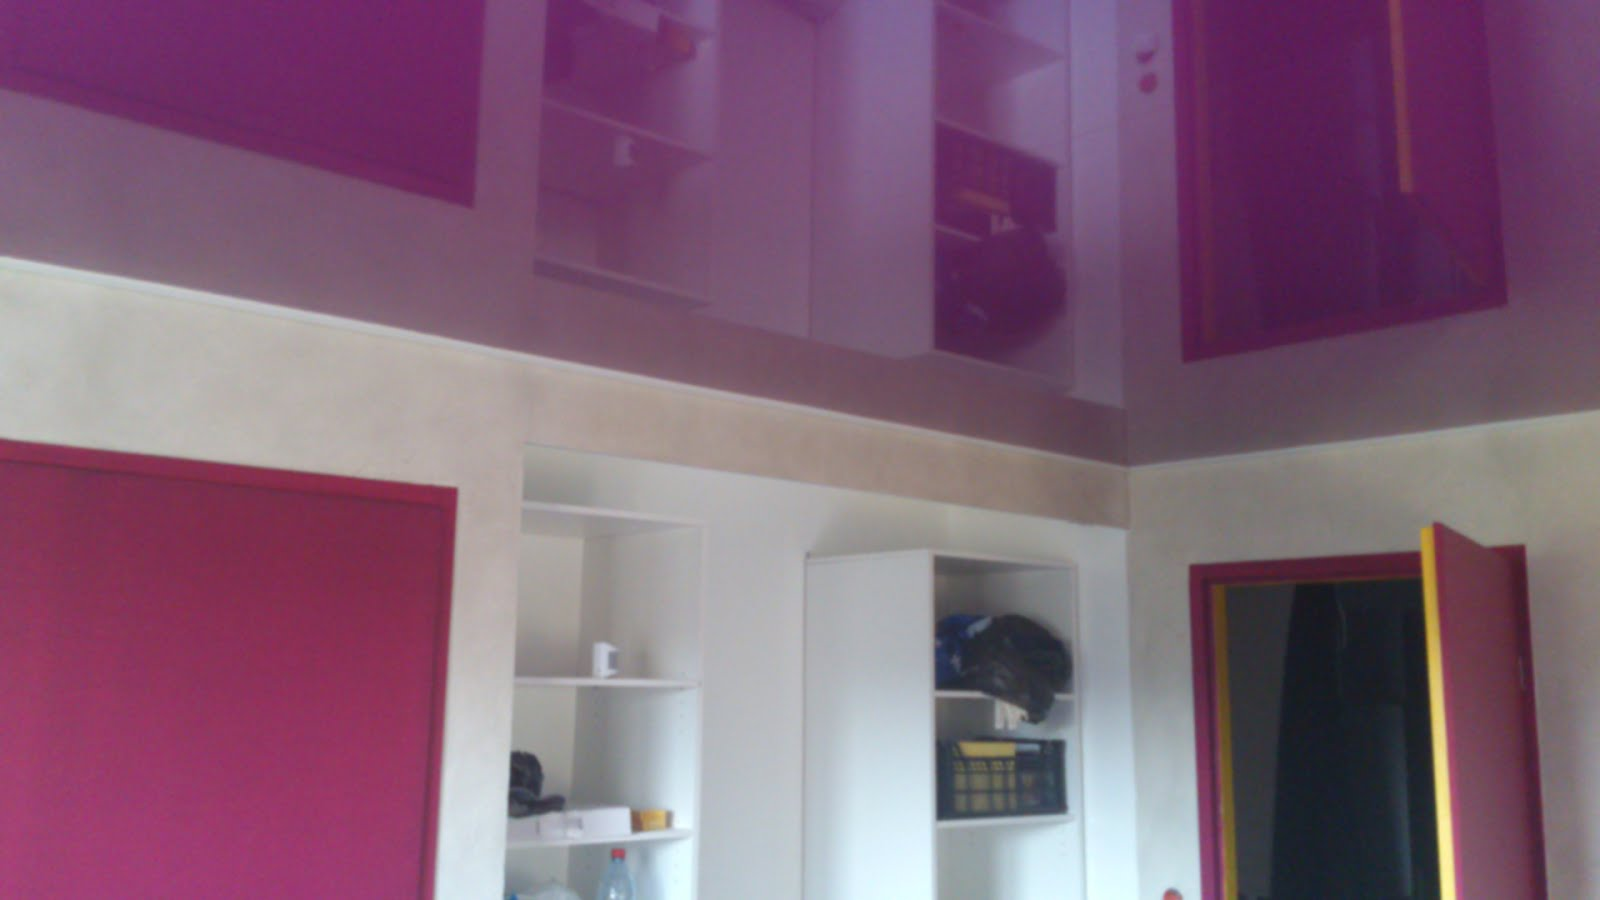 new construction, renovation, design and decoration project, as an alternative or a complement